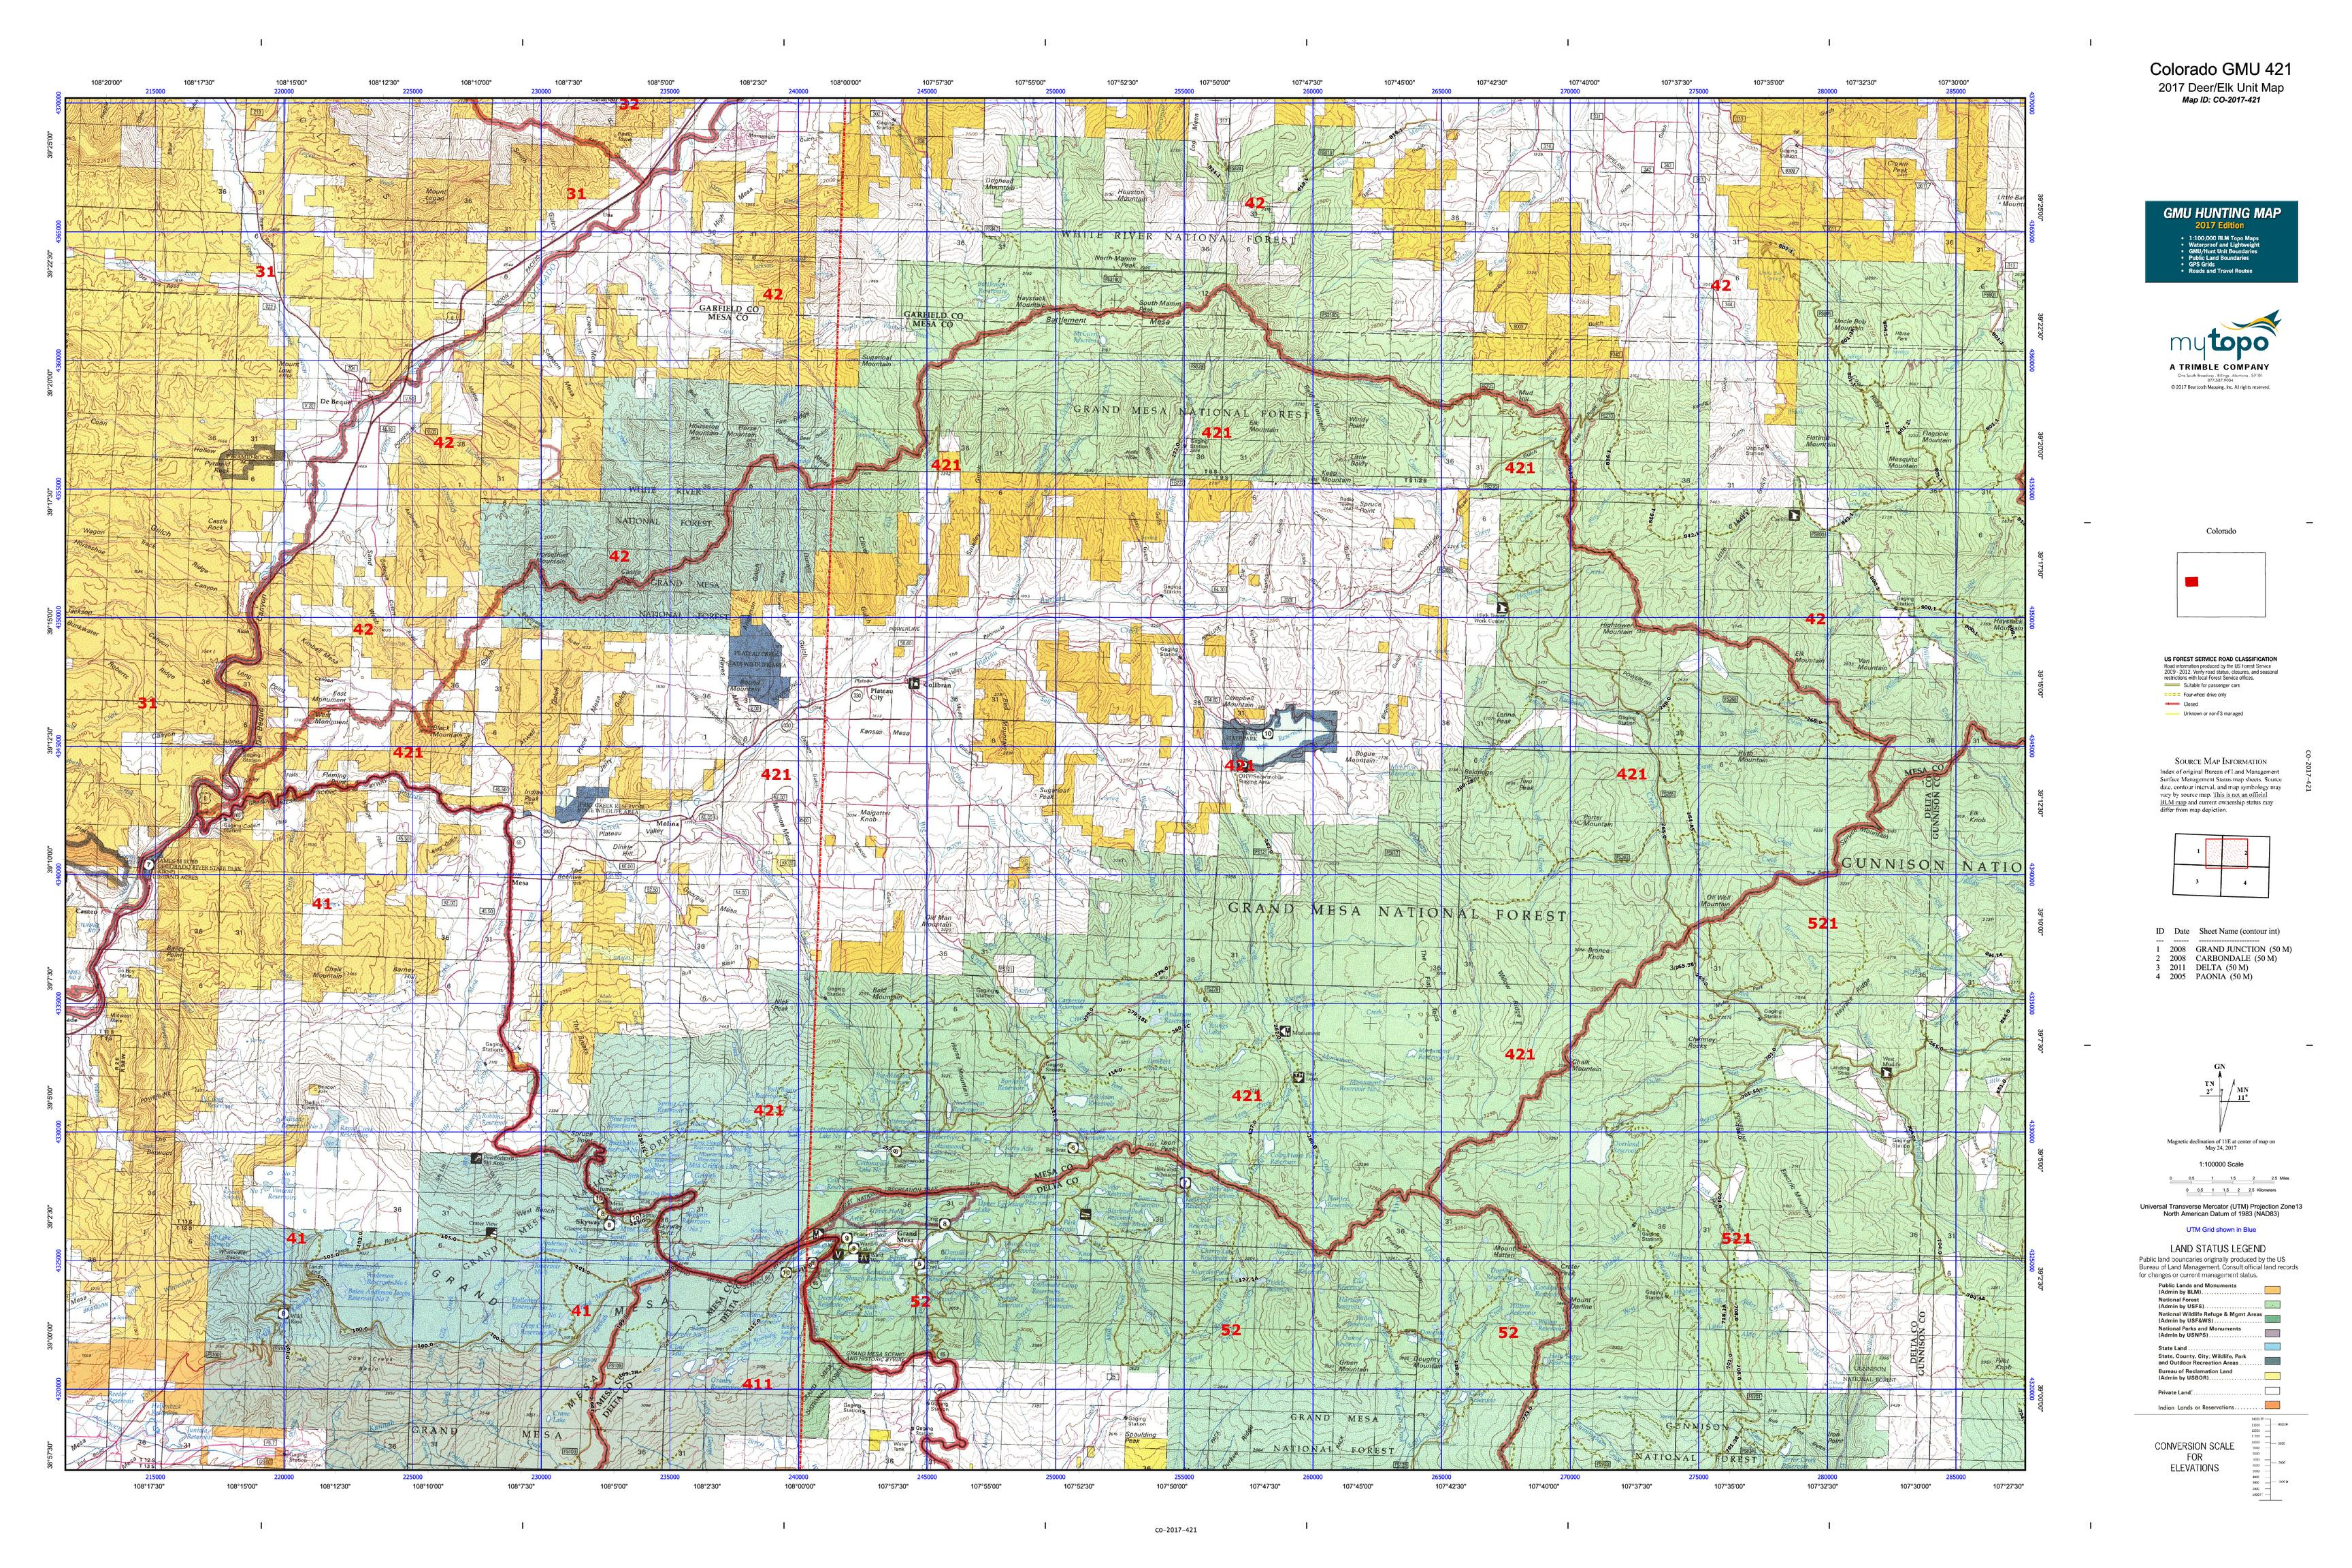 Colorado GMU 421 Map  MyTopo